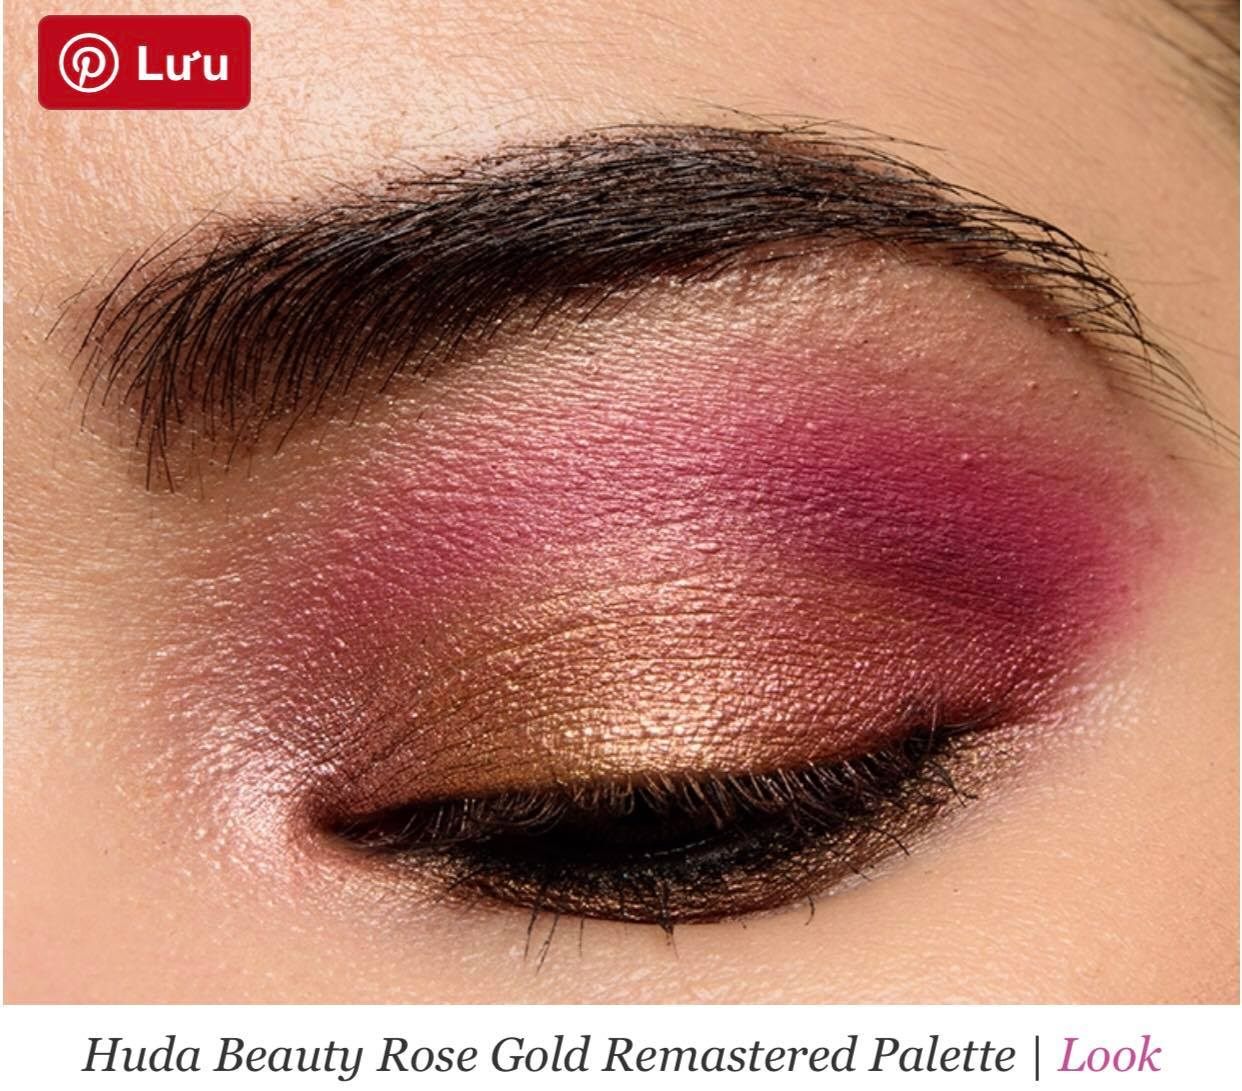 PHẤN MẮT HUDA BEAUTY ROSE GOLD REMASTERED EYESHADOW PALETTE